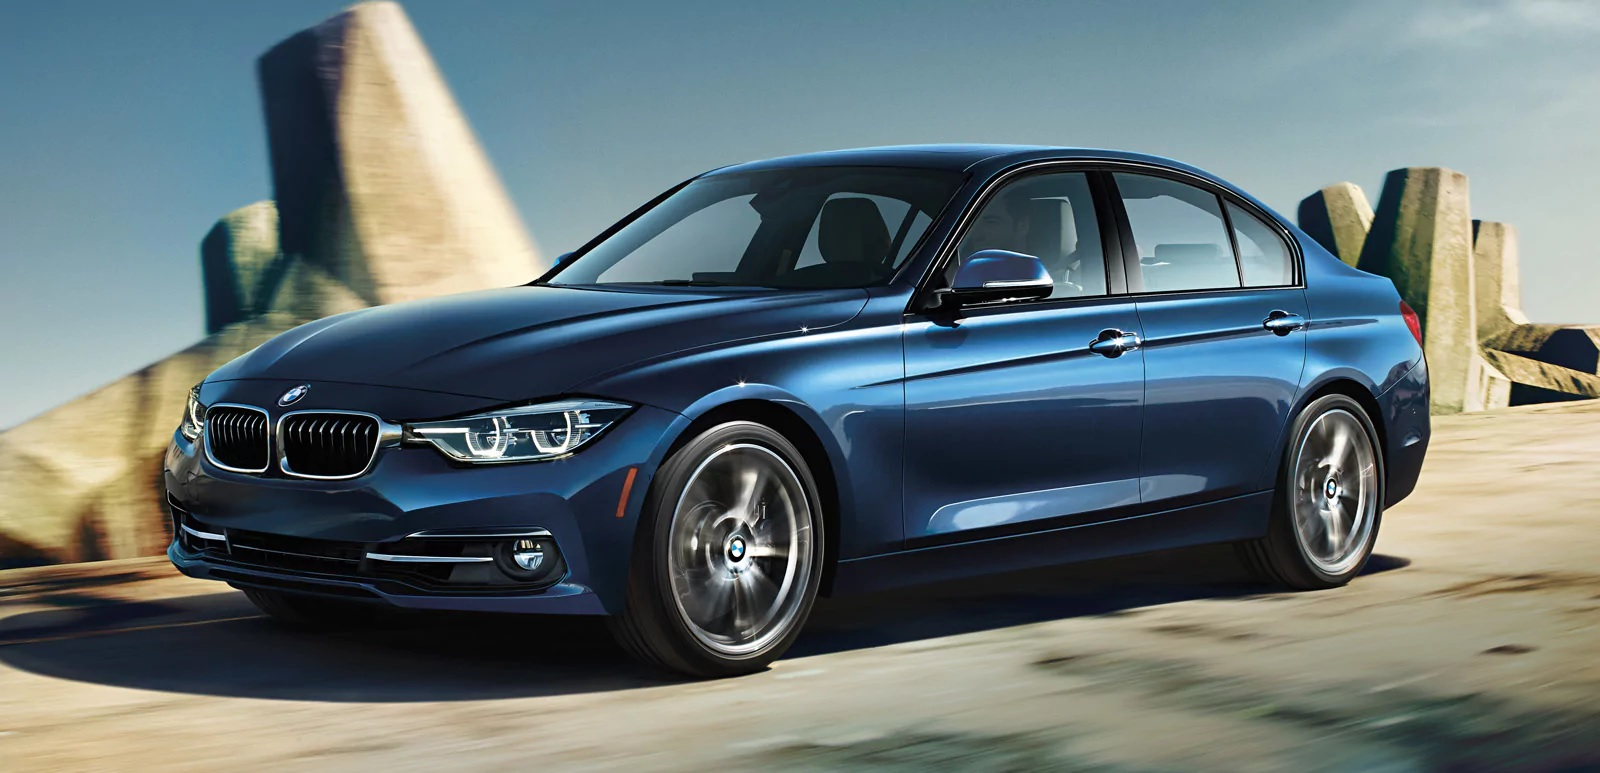 2018 BMW 3 Series Financing in Plano, TX